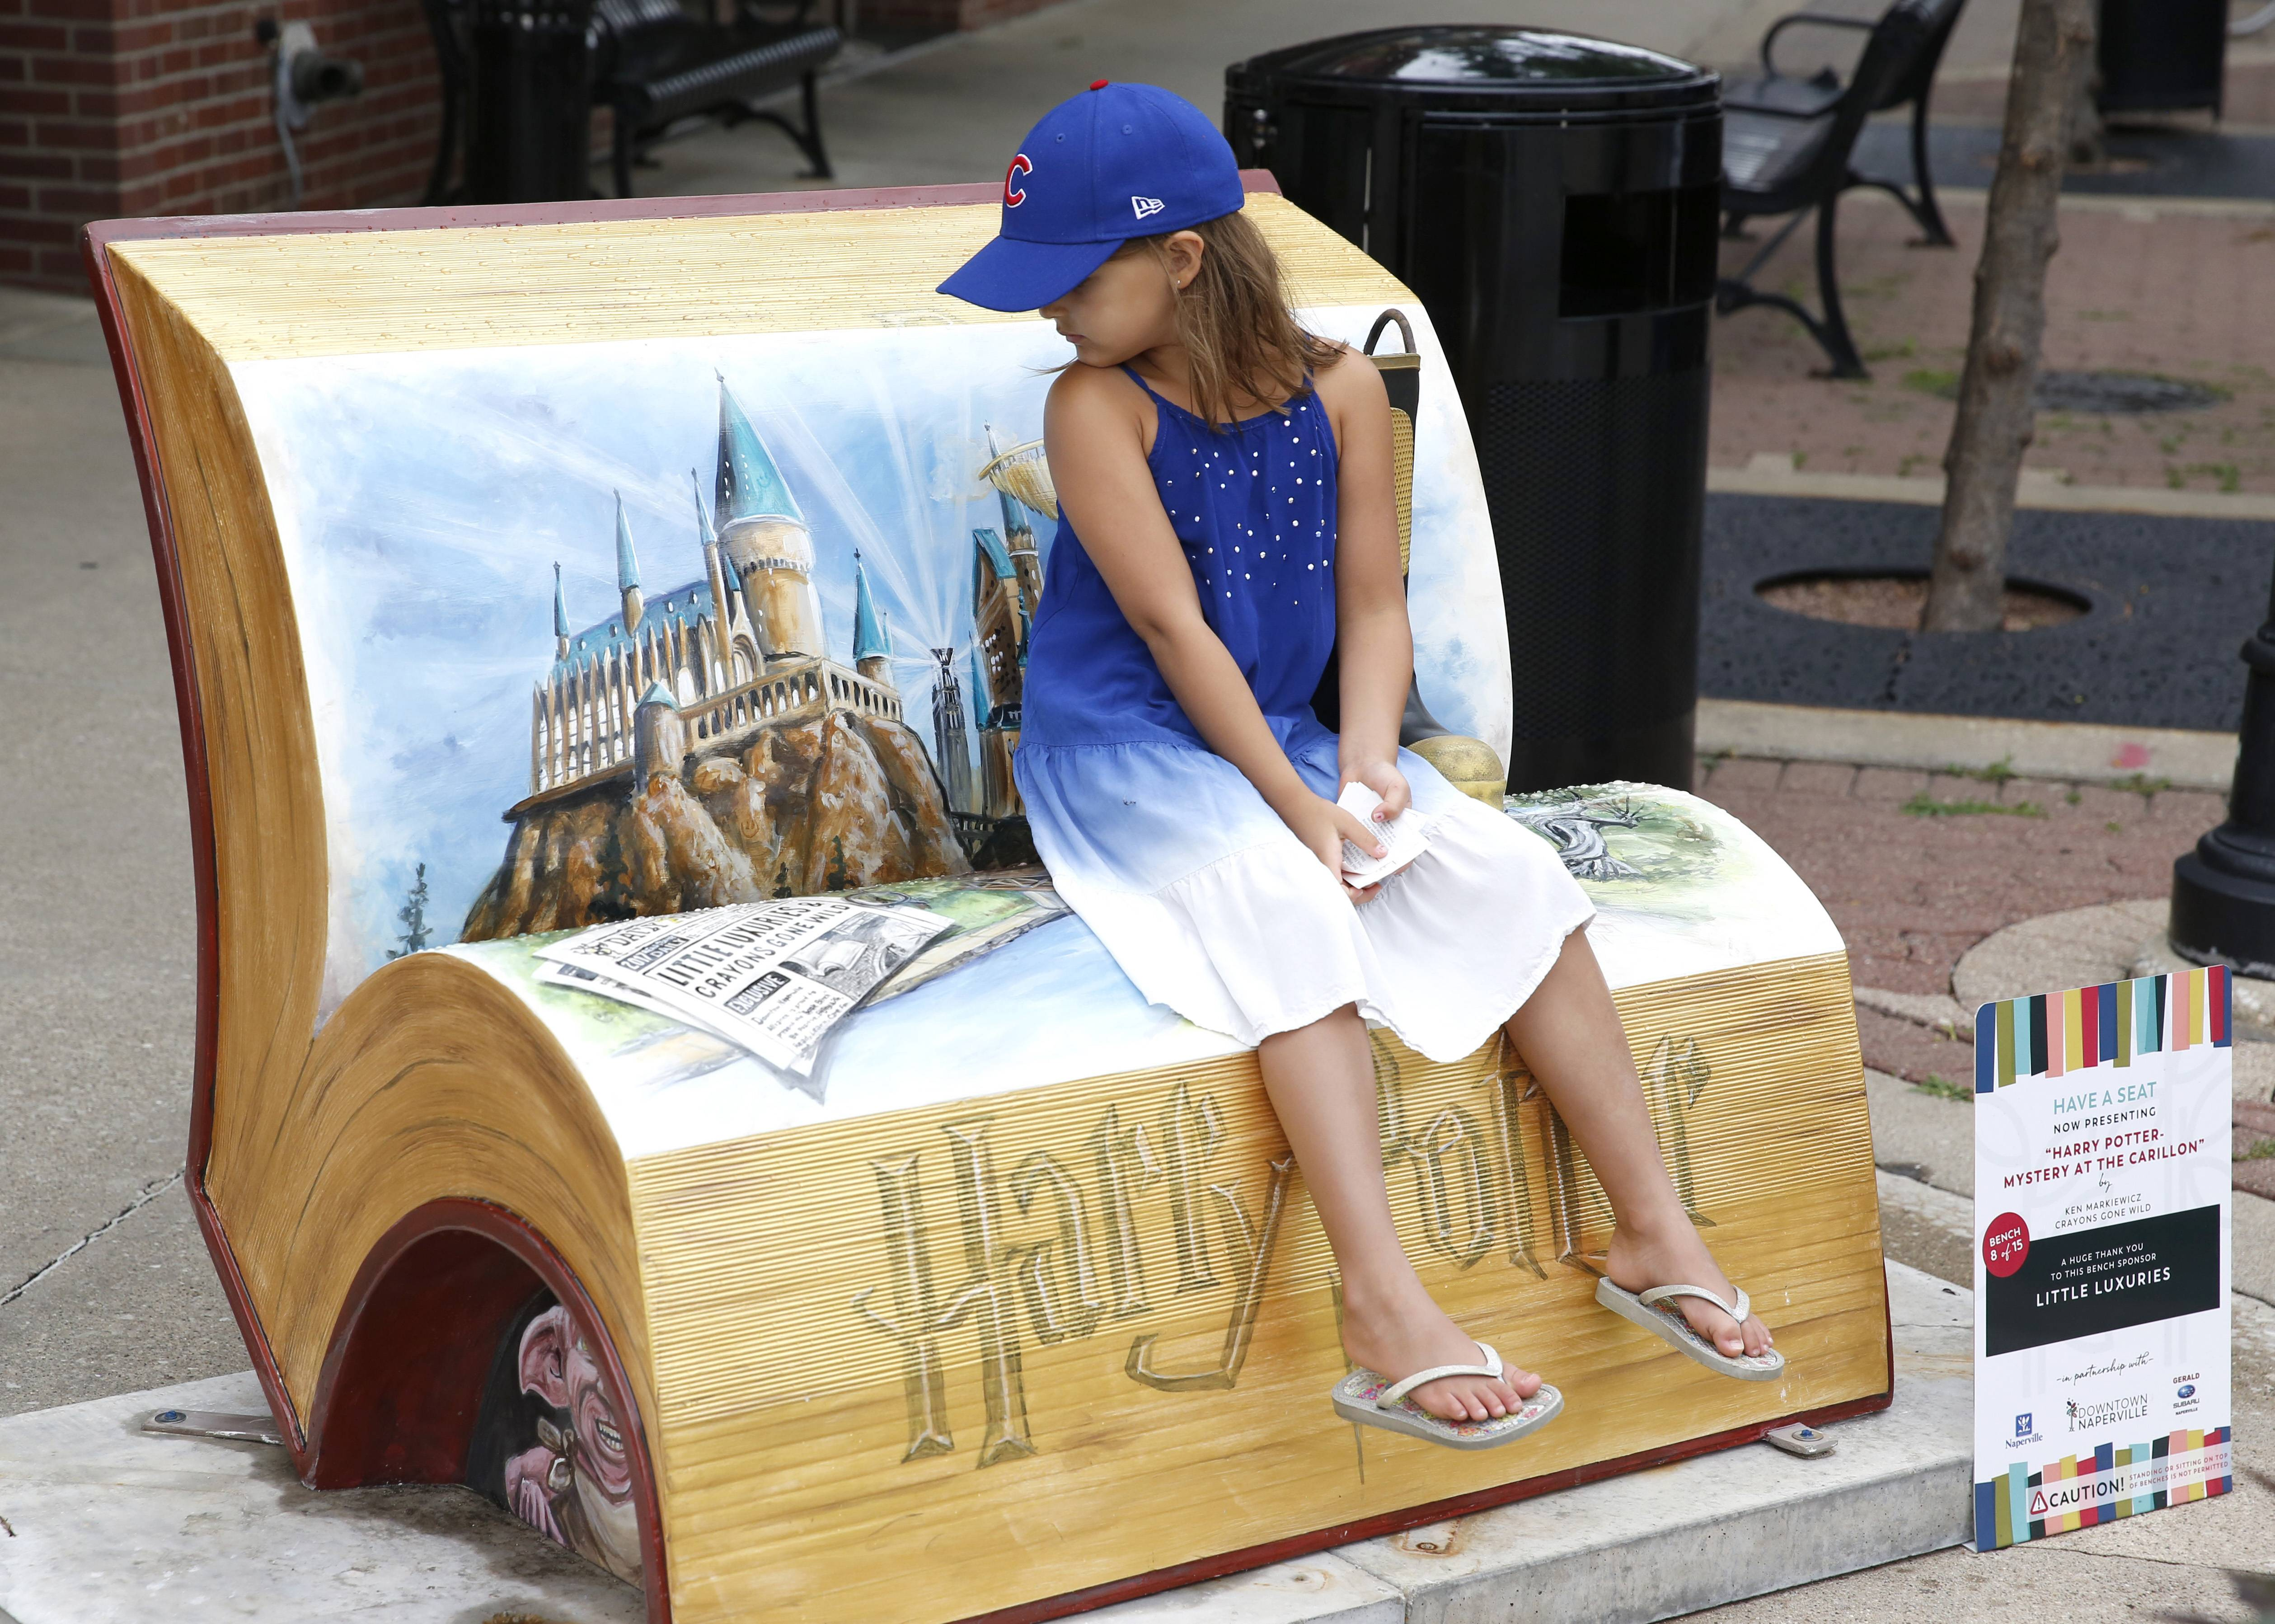 Book-shaped sculptures fill downtown Naperville with imaginative seating